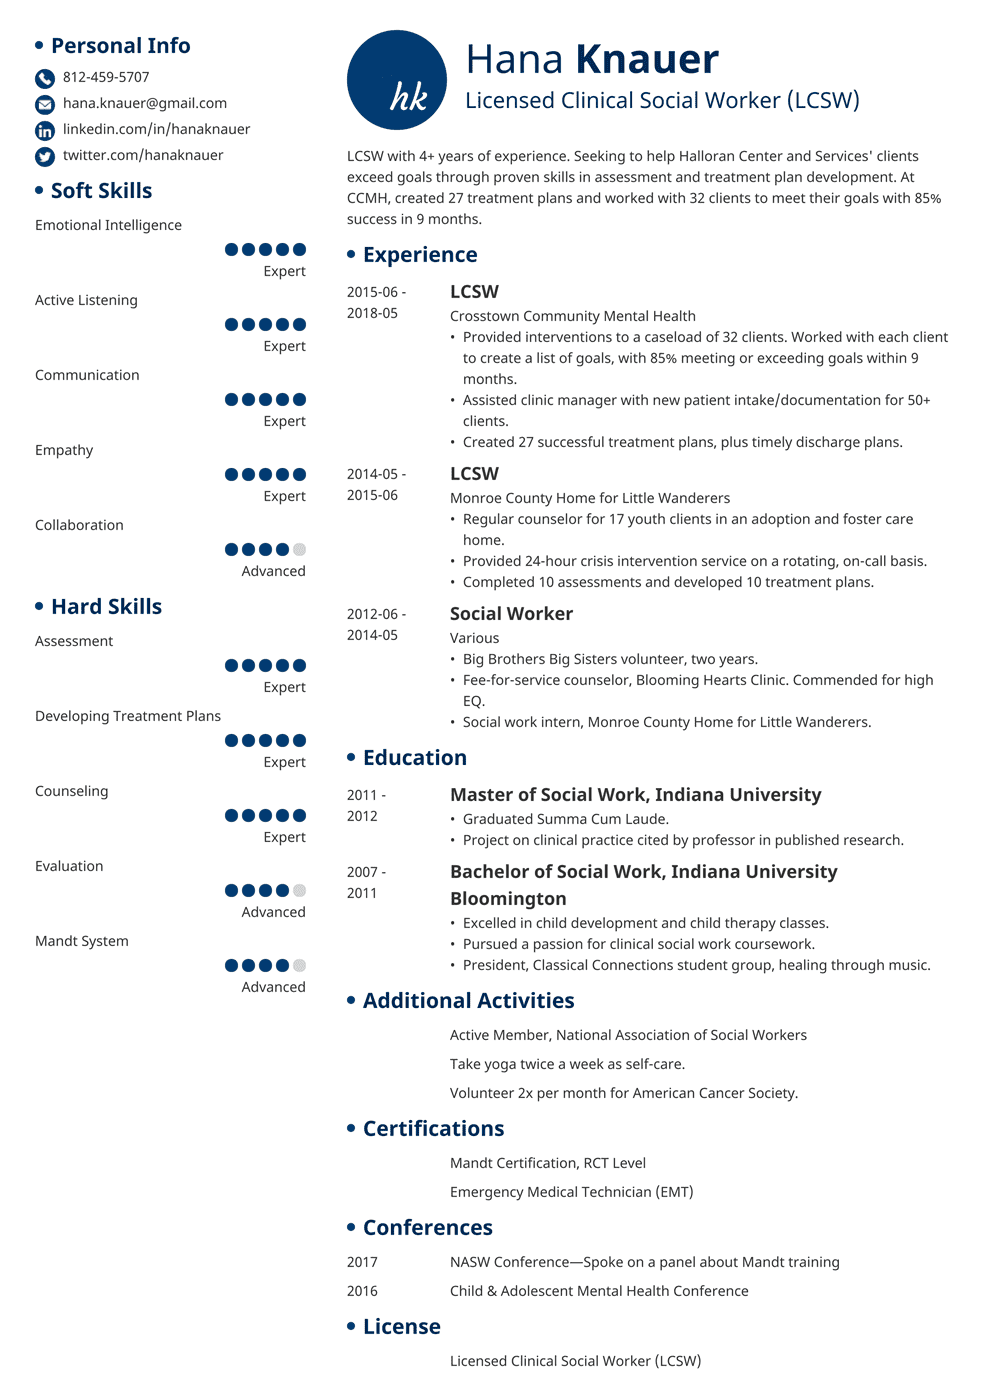 Social Work Resume: Samples and Full Writing Guide [+20 Examples]